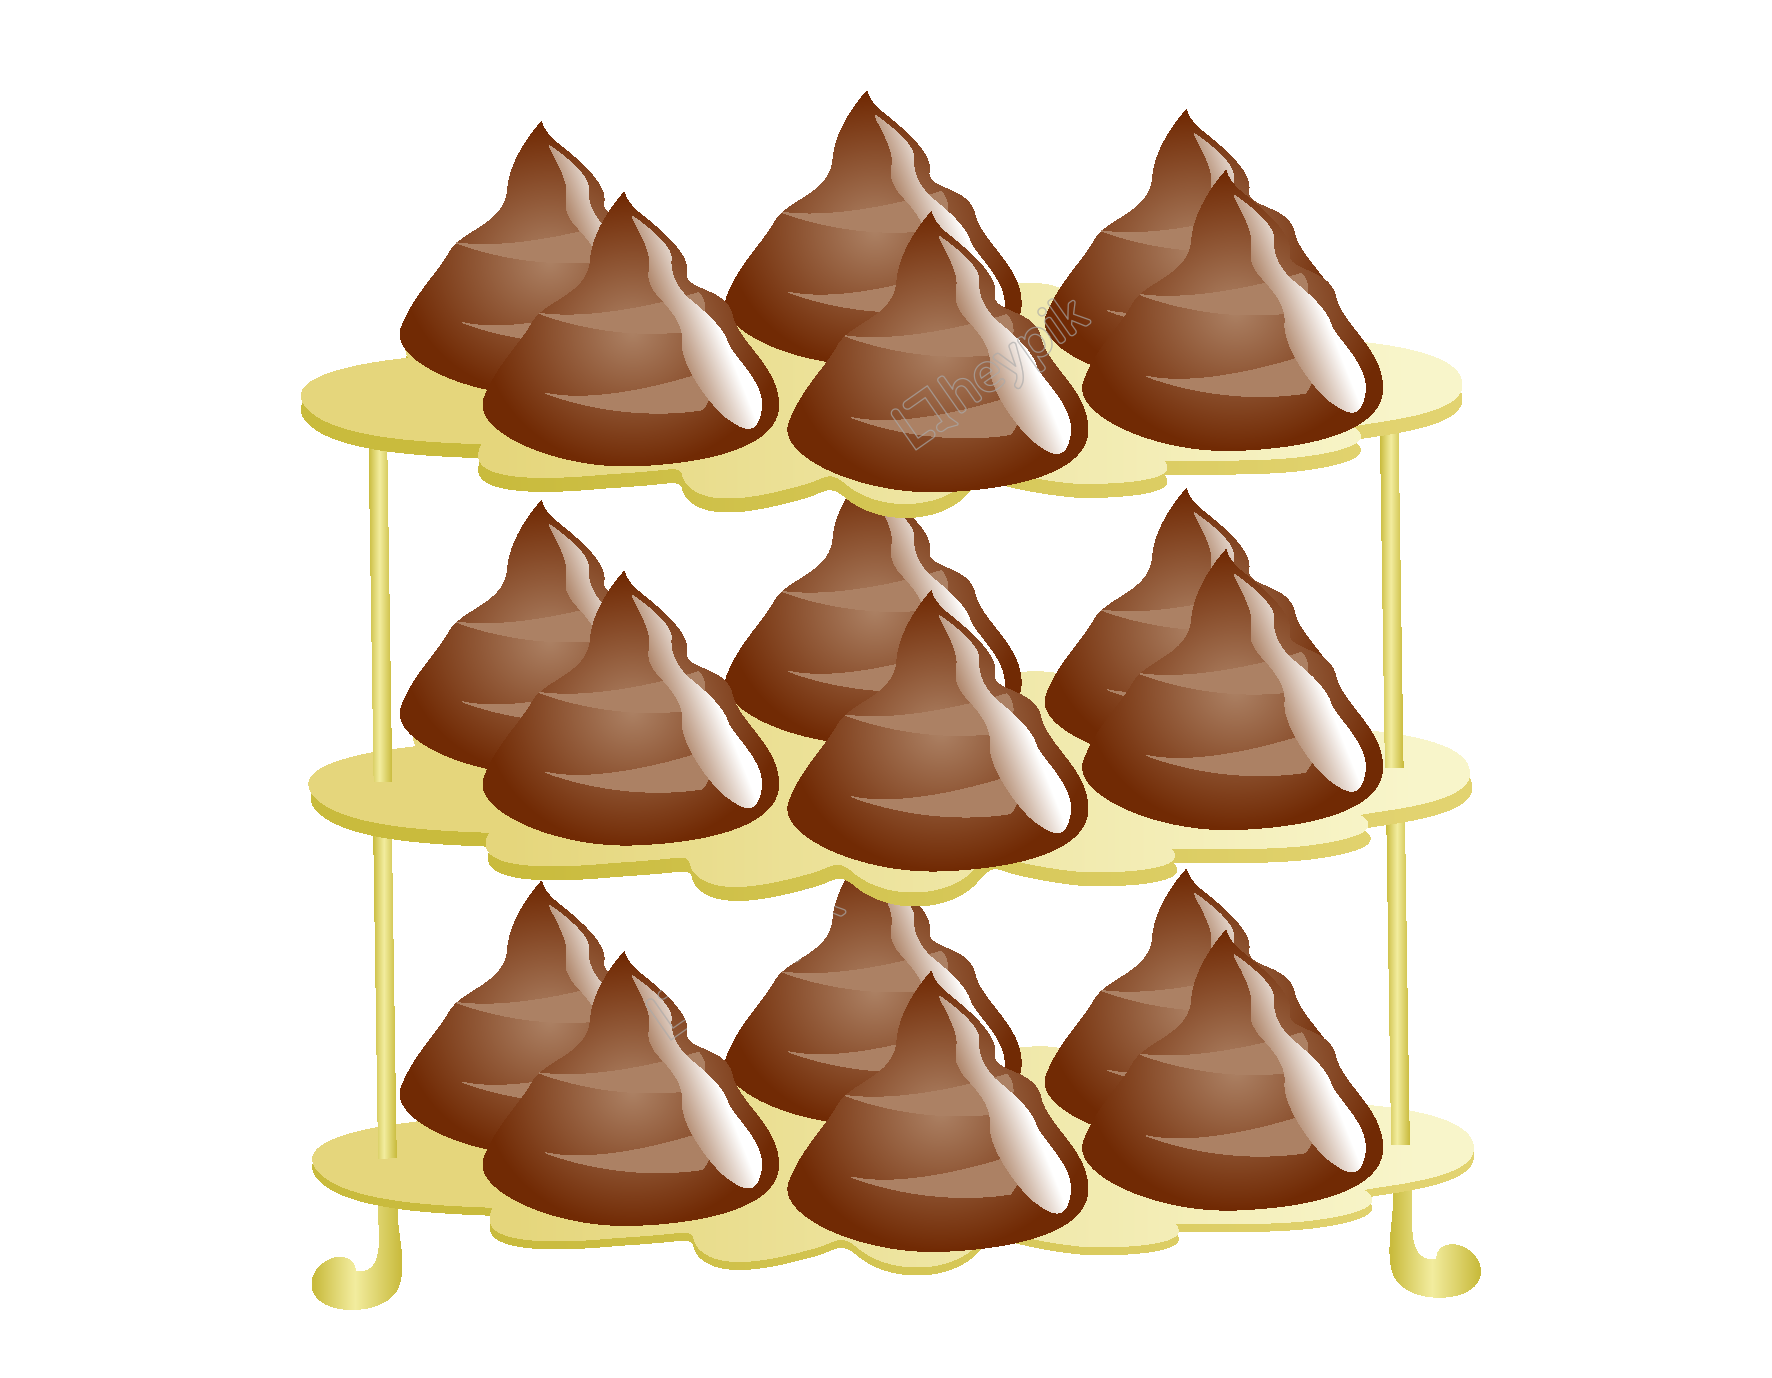 Shelf vector cartoon. Chocolate elements free download